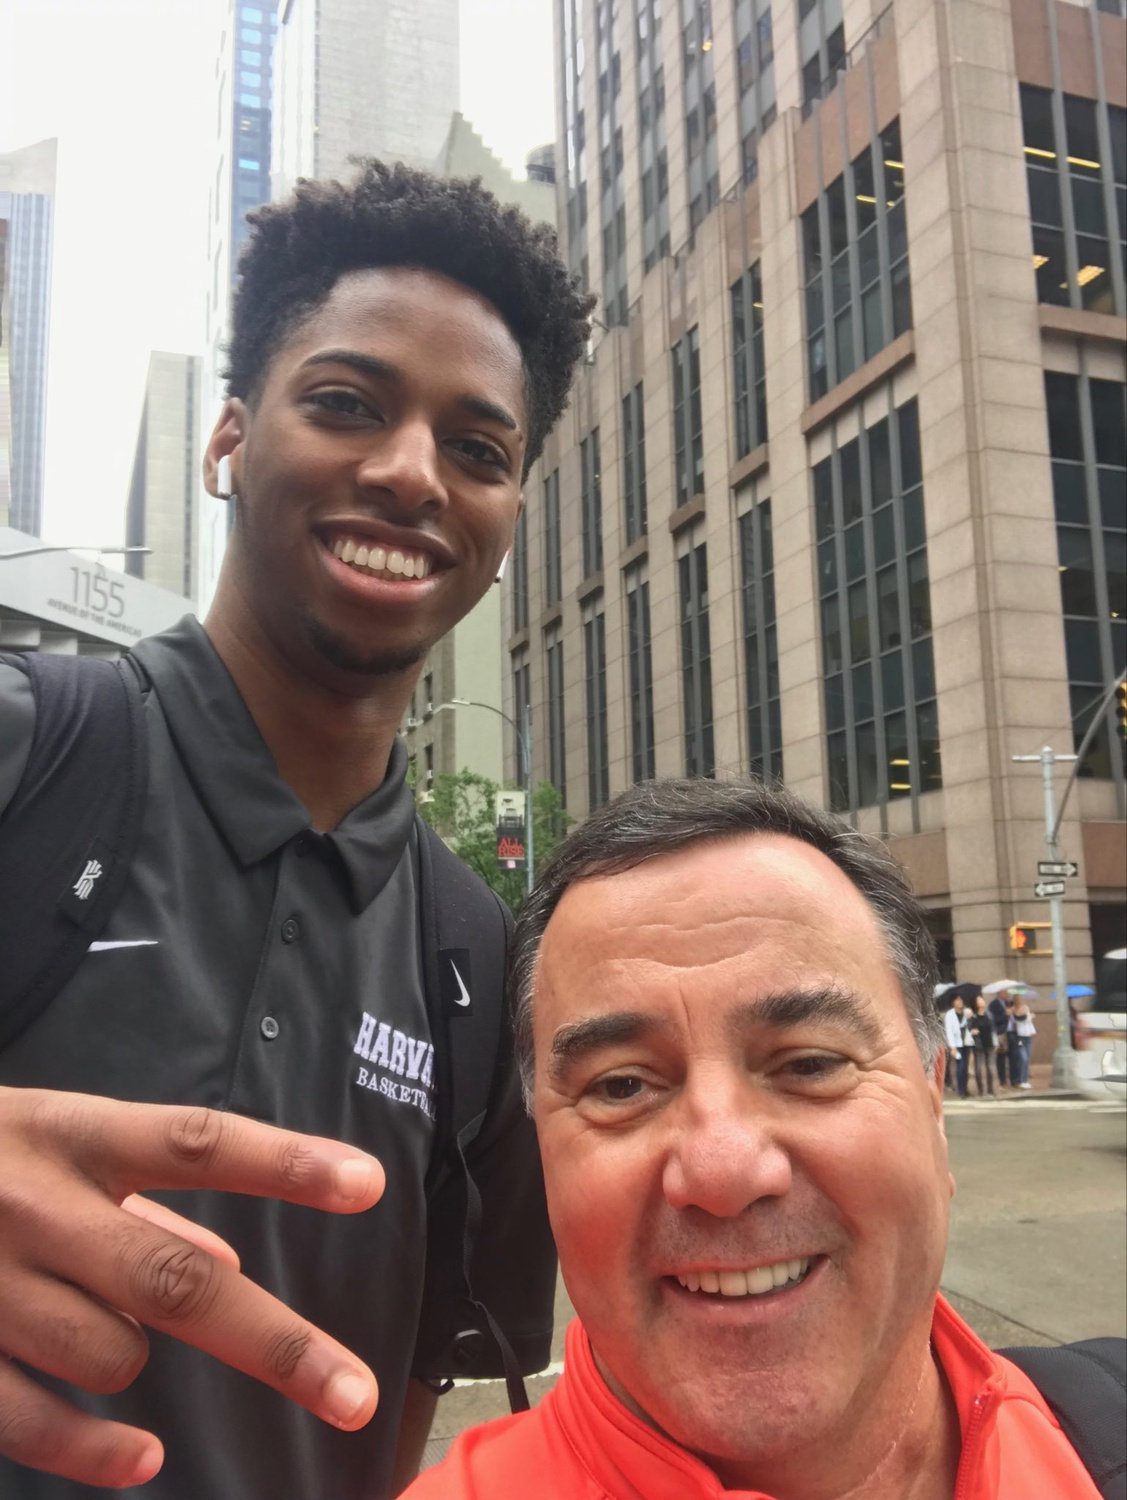 Baker with College Basketball personality Fran Fraschilla in New York City.